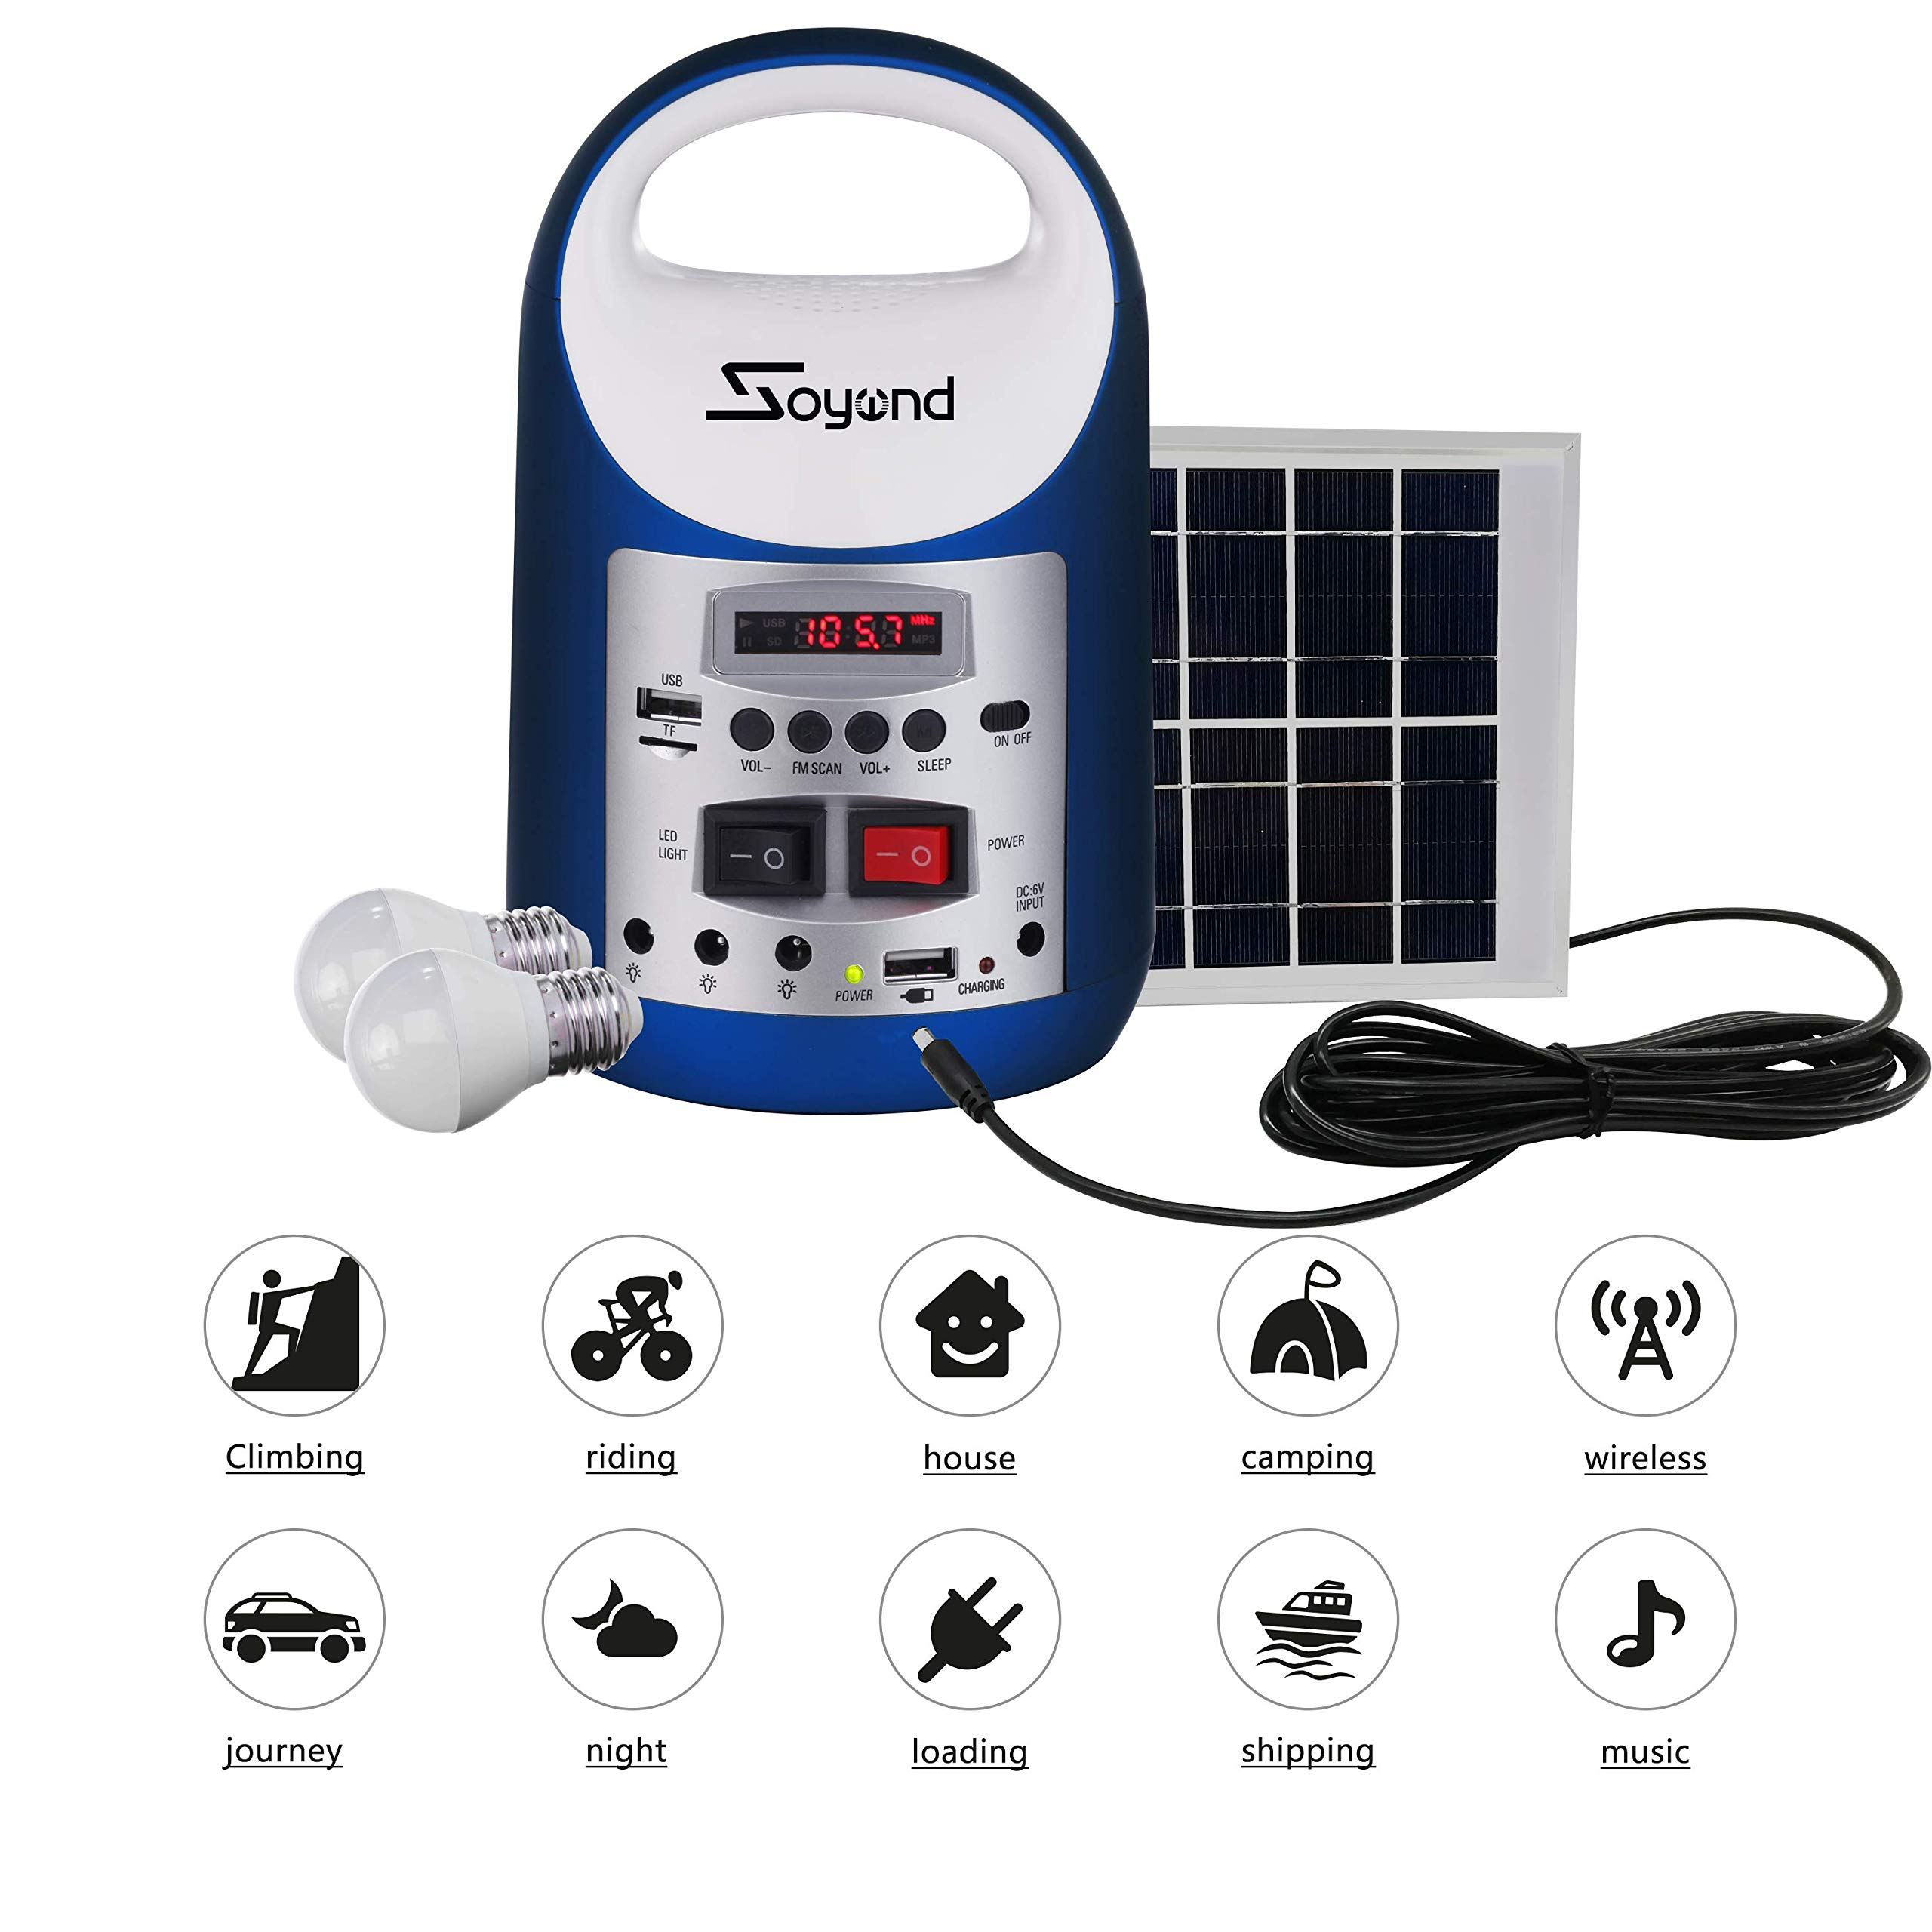 soyond Portable Solar Generator with Solar Panel Solar Powered Generator Inverter Small Basic Portable Electric Generator Kit by soyond (Image #3)